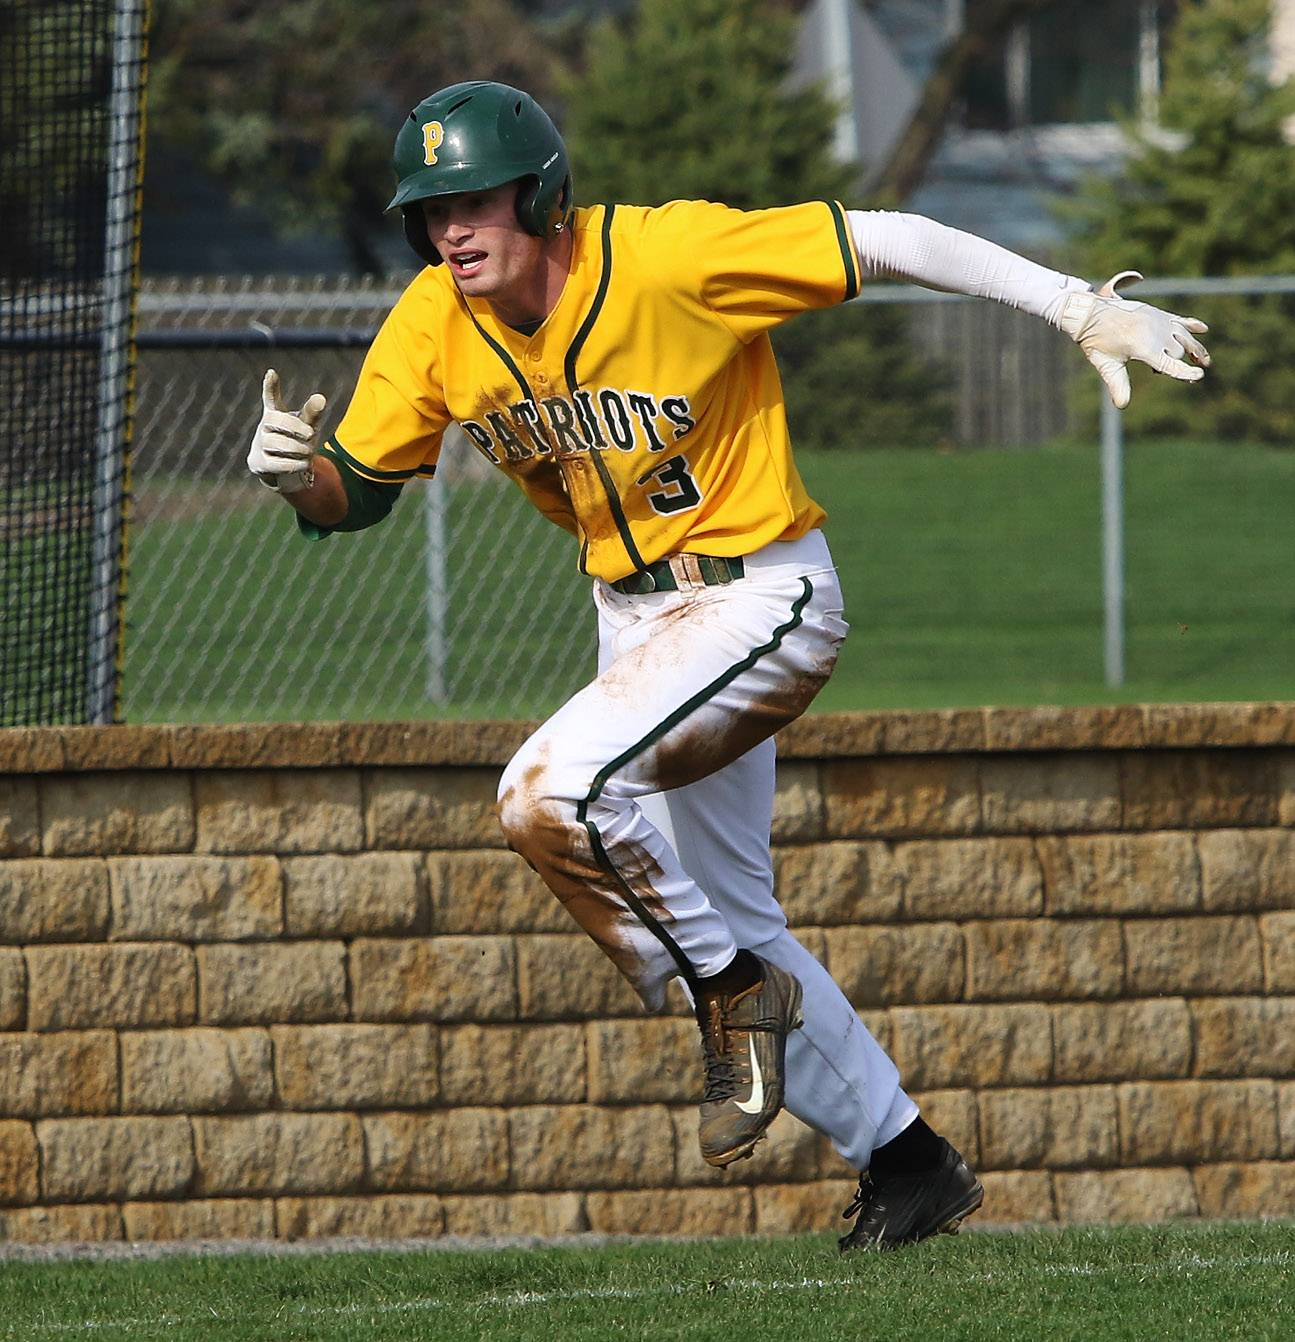 Stevenson's Henry Marchese, an Iowa football recruit, is drawing interest from professional baseball organizations for his recent exploits.